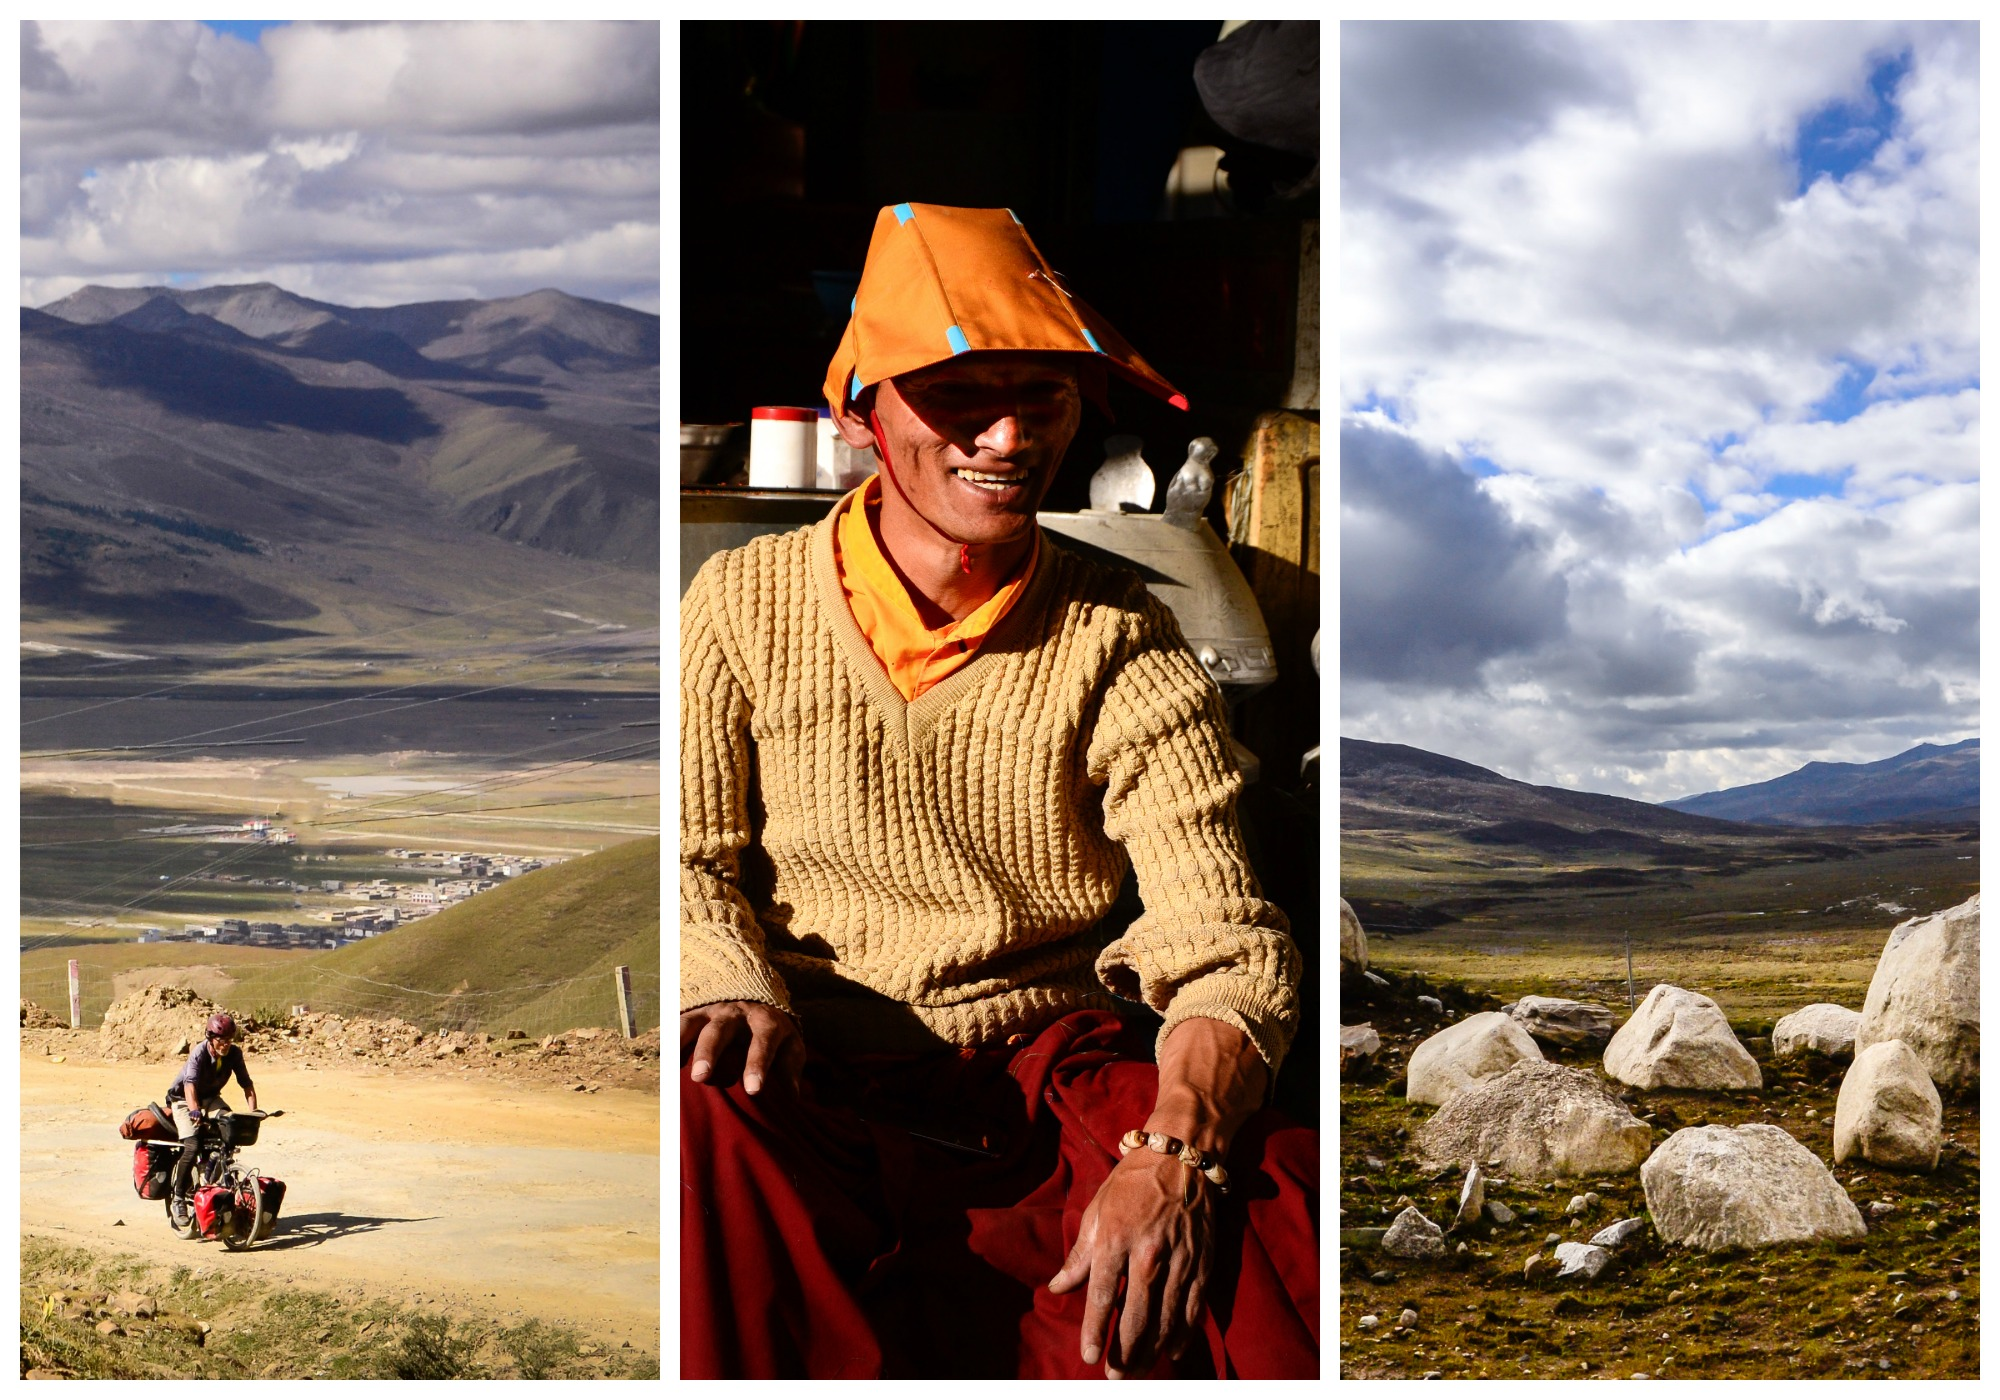 Tibet for Foreigners: Part 2